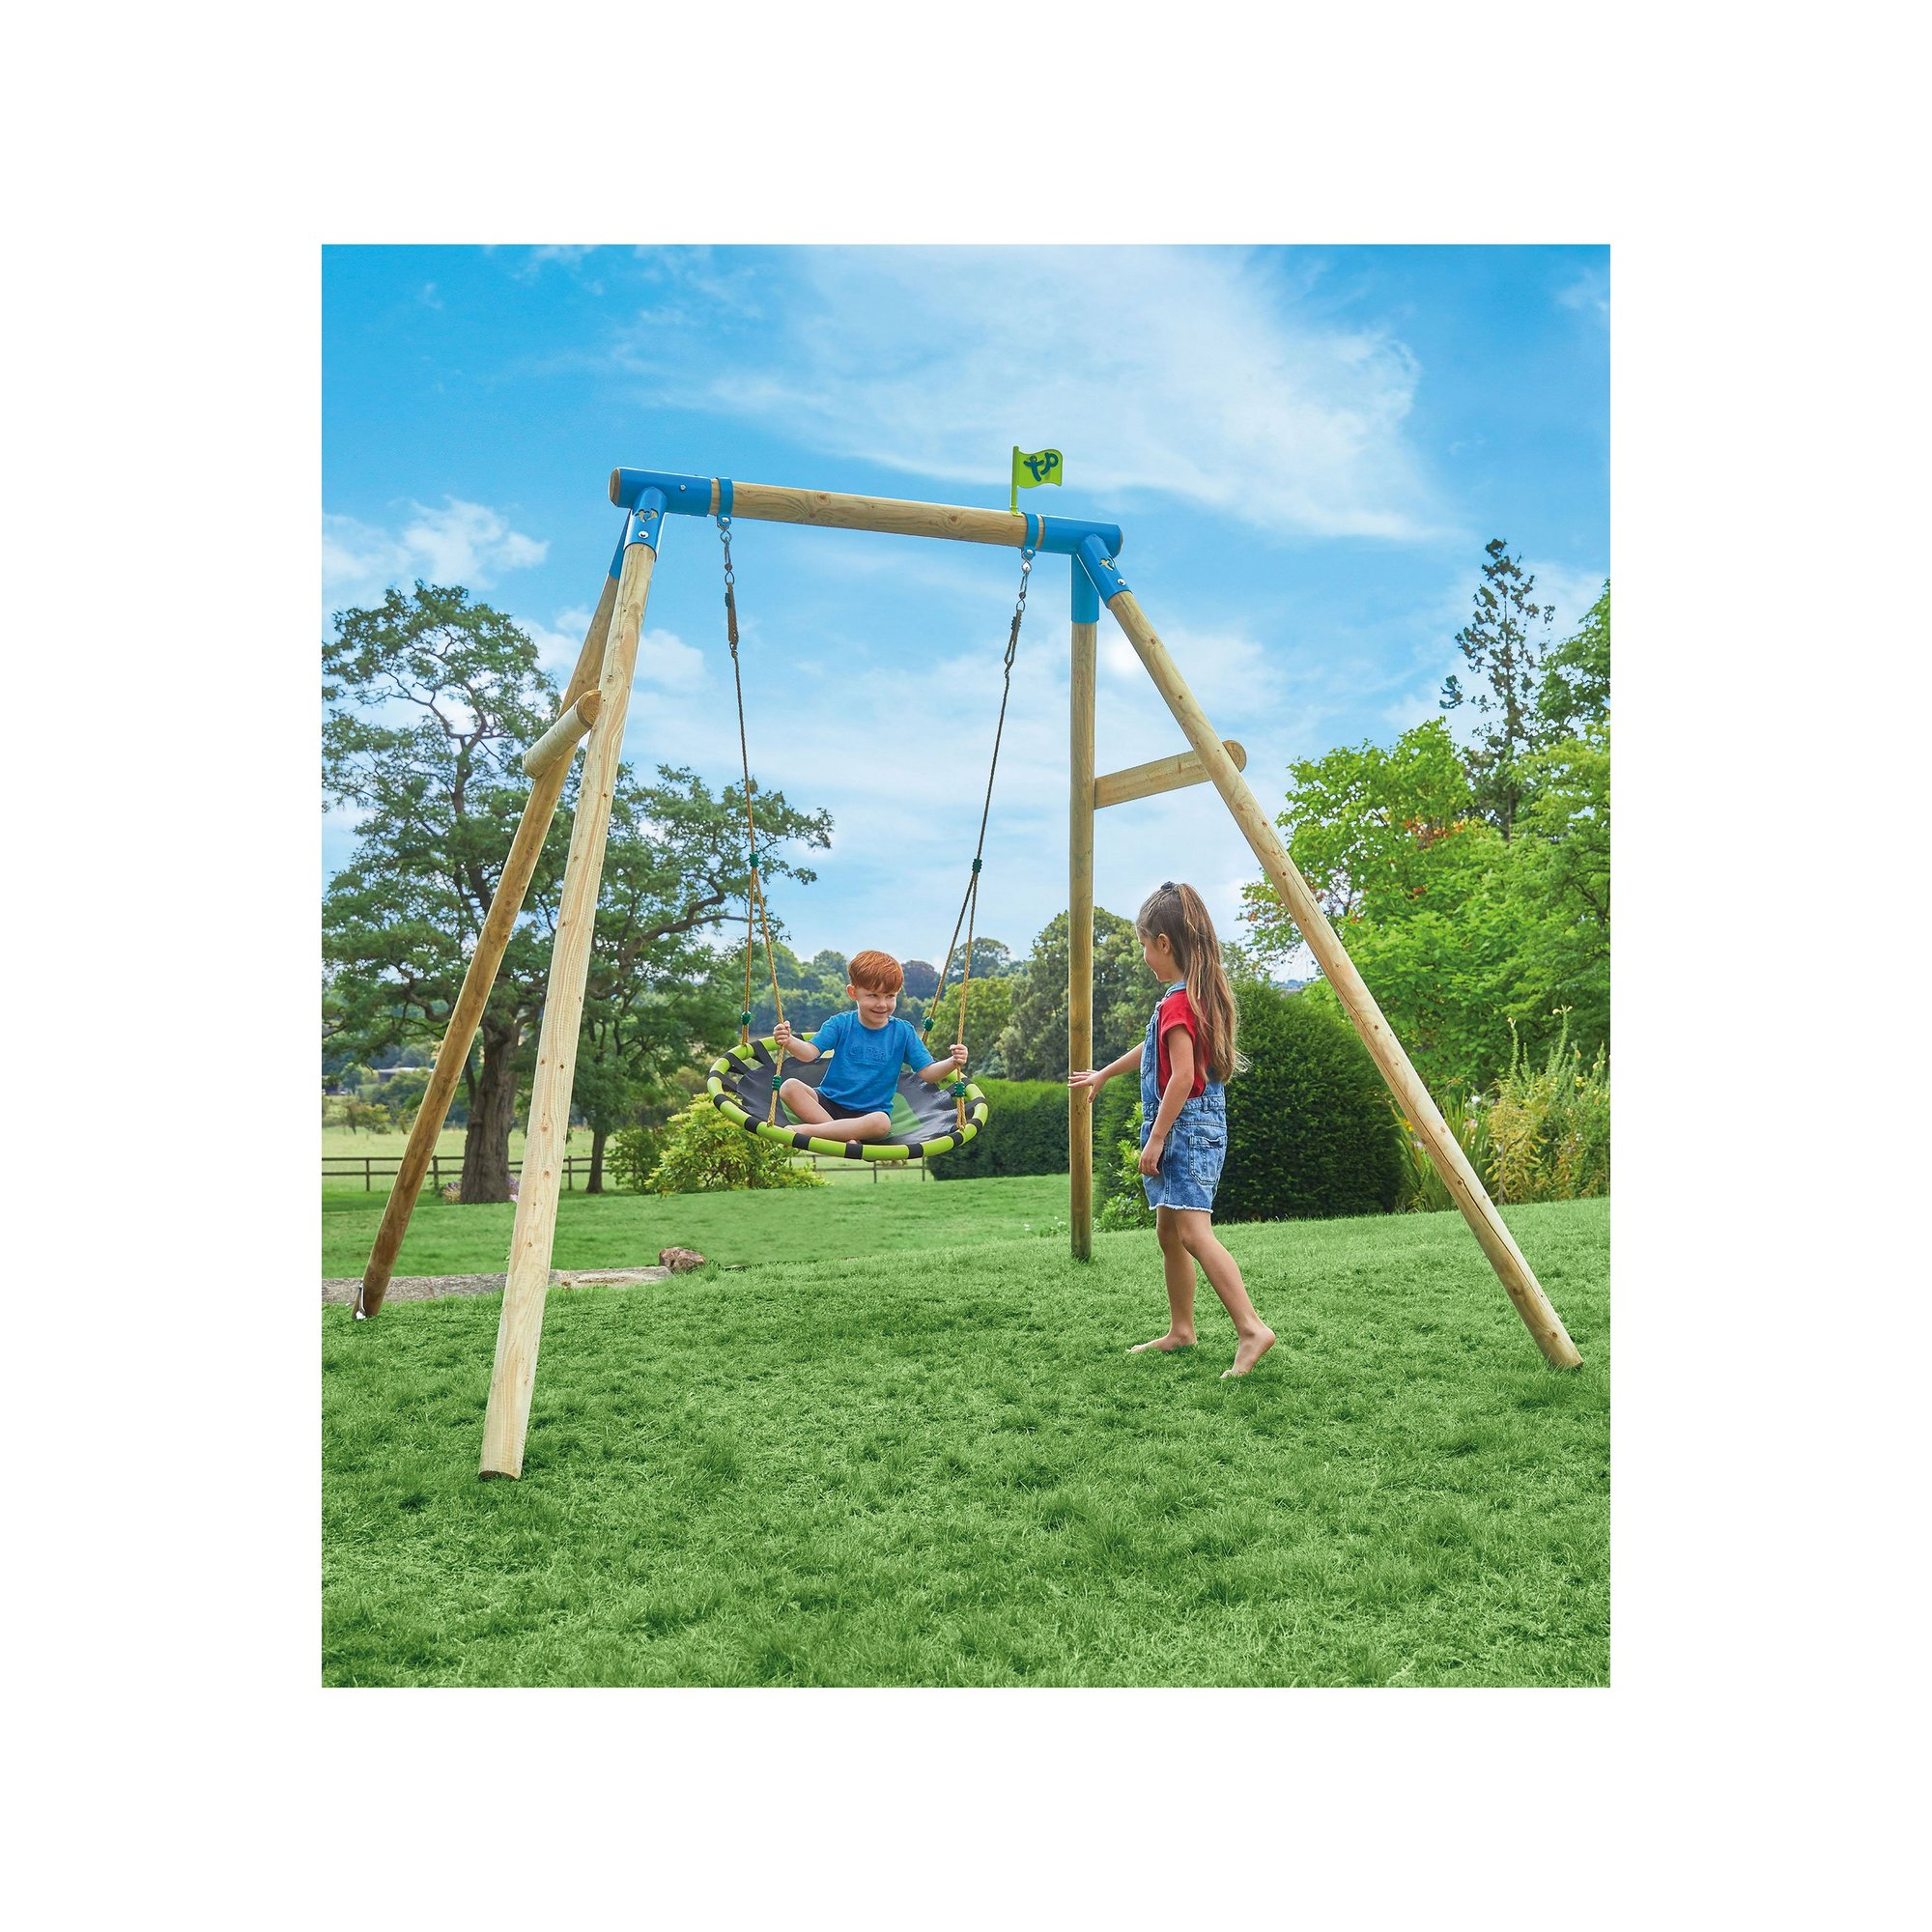 Image of TP Toys Eagle Wooden Swing Set with Large Nest Swing